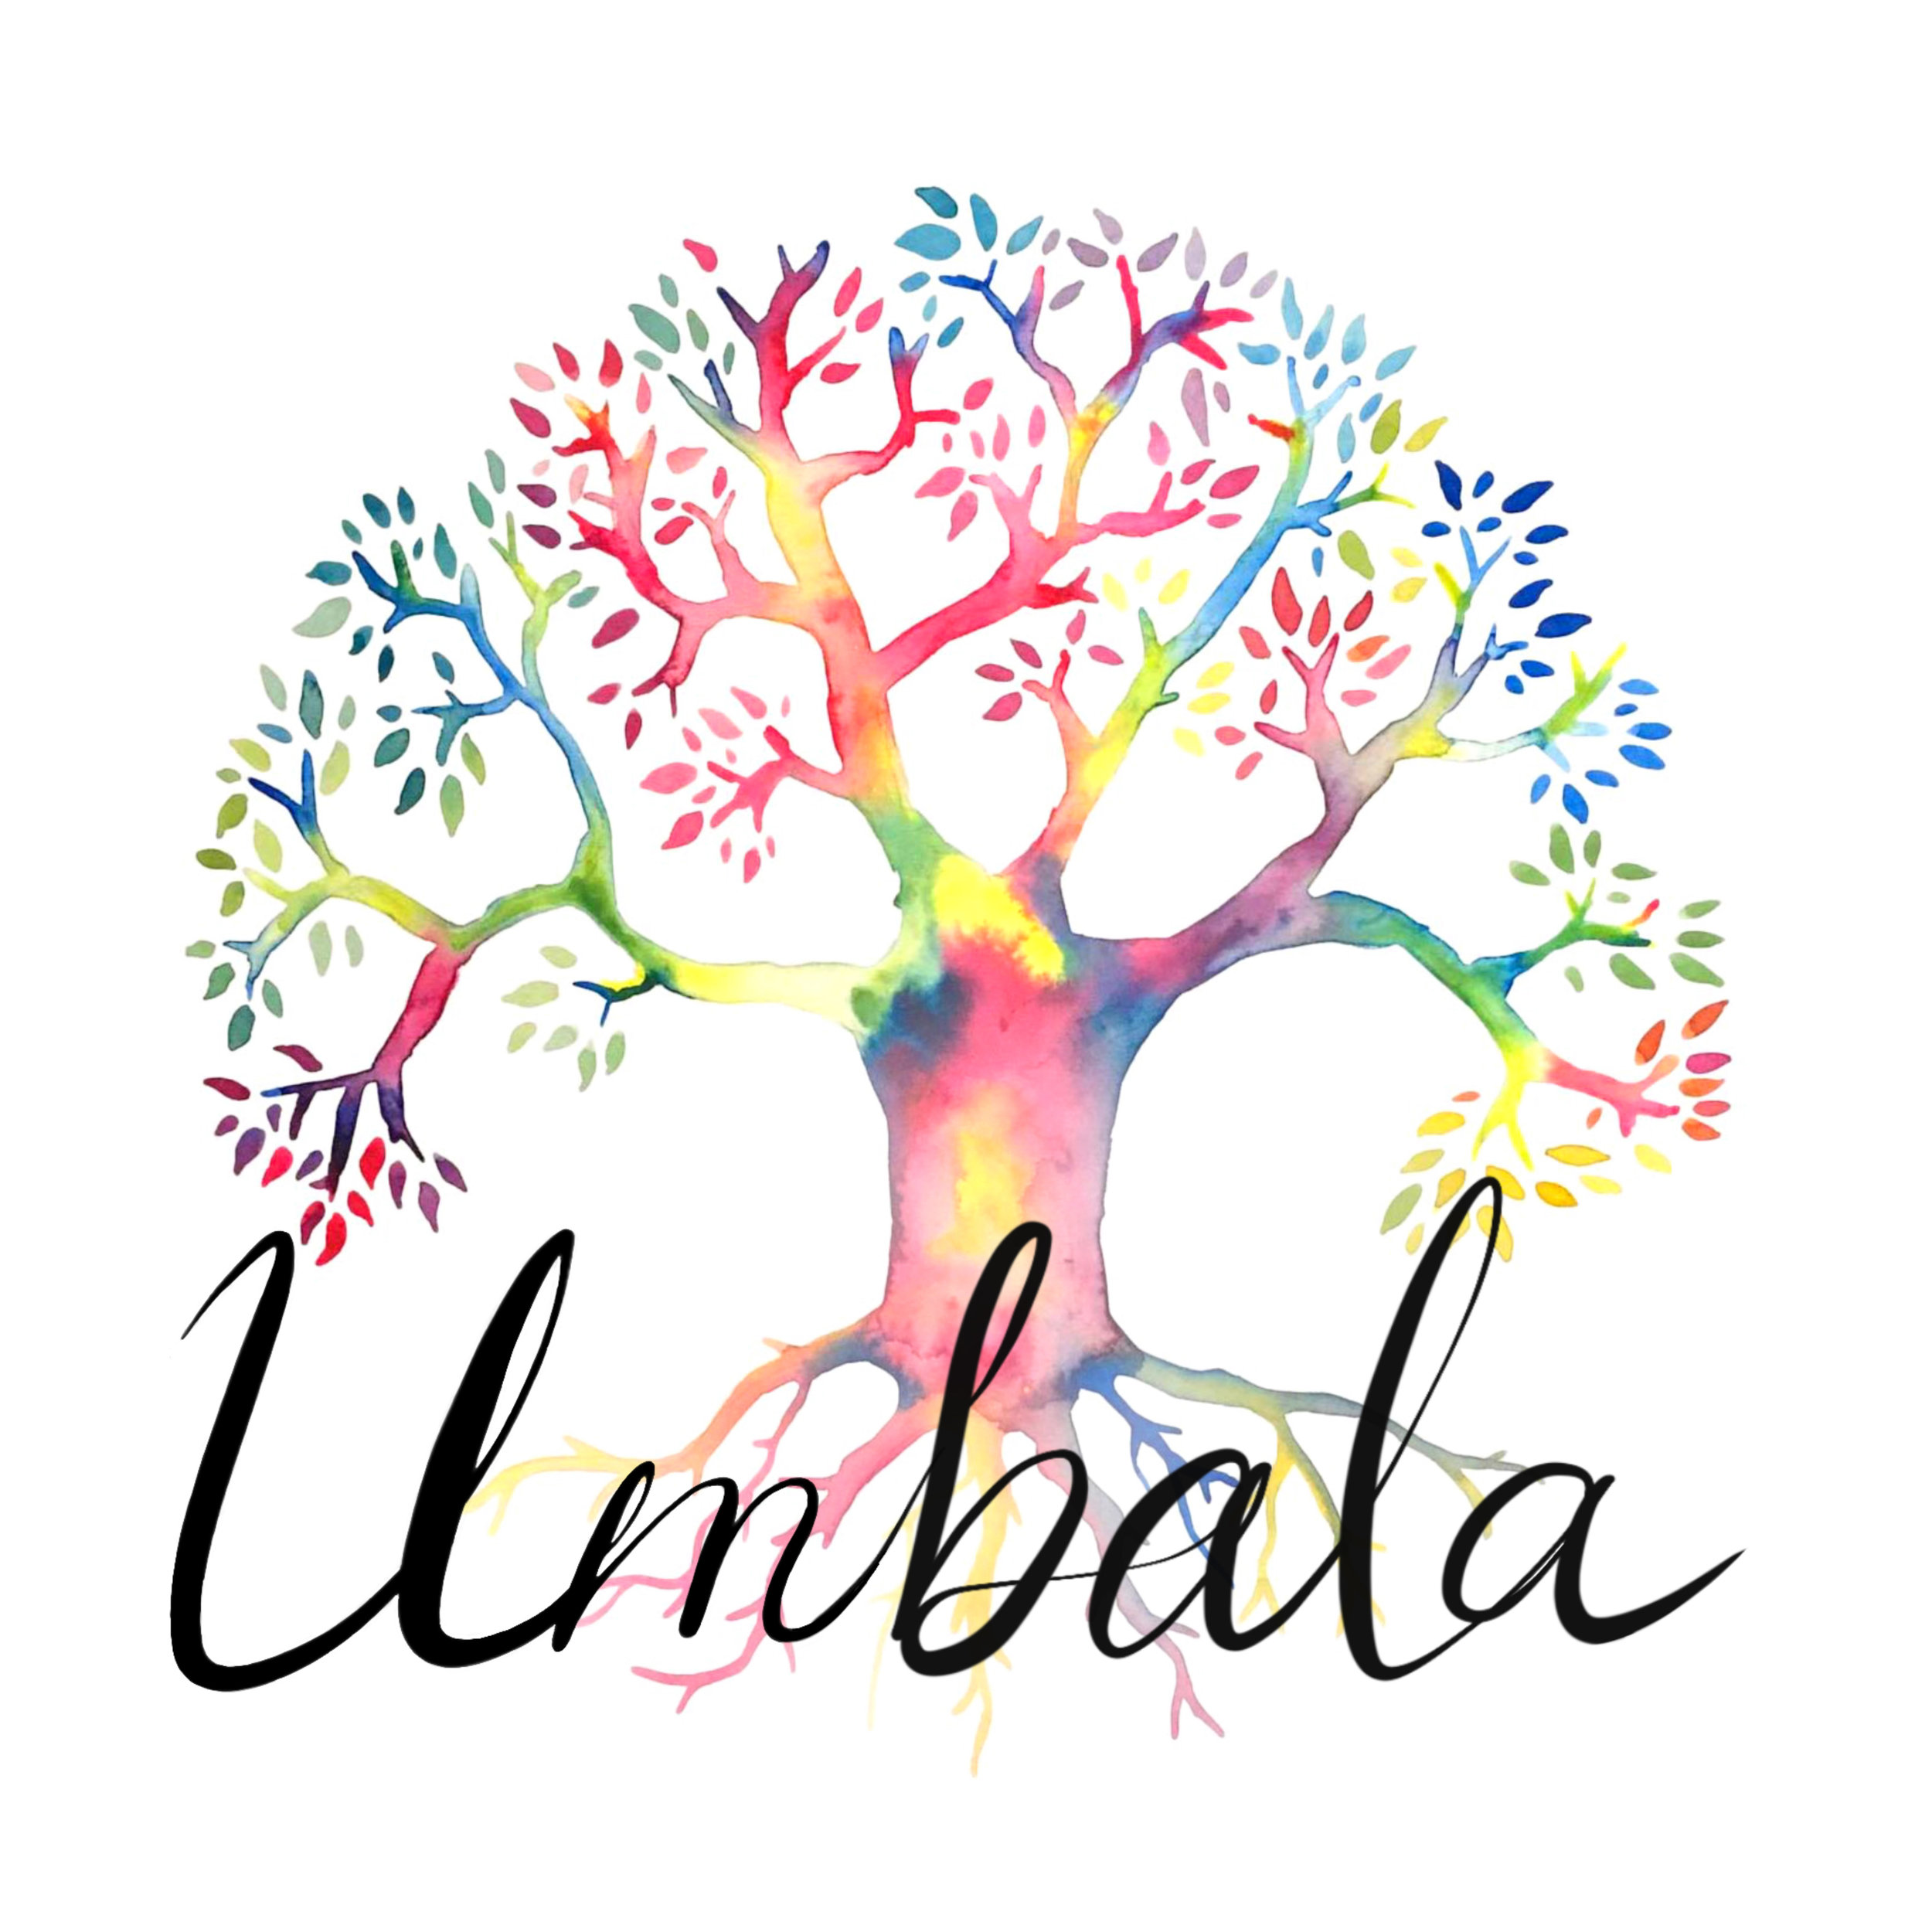 Artwork, lettering and logo design for Umbala Events ($600)